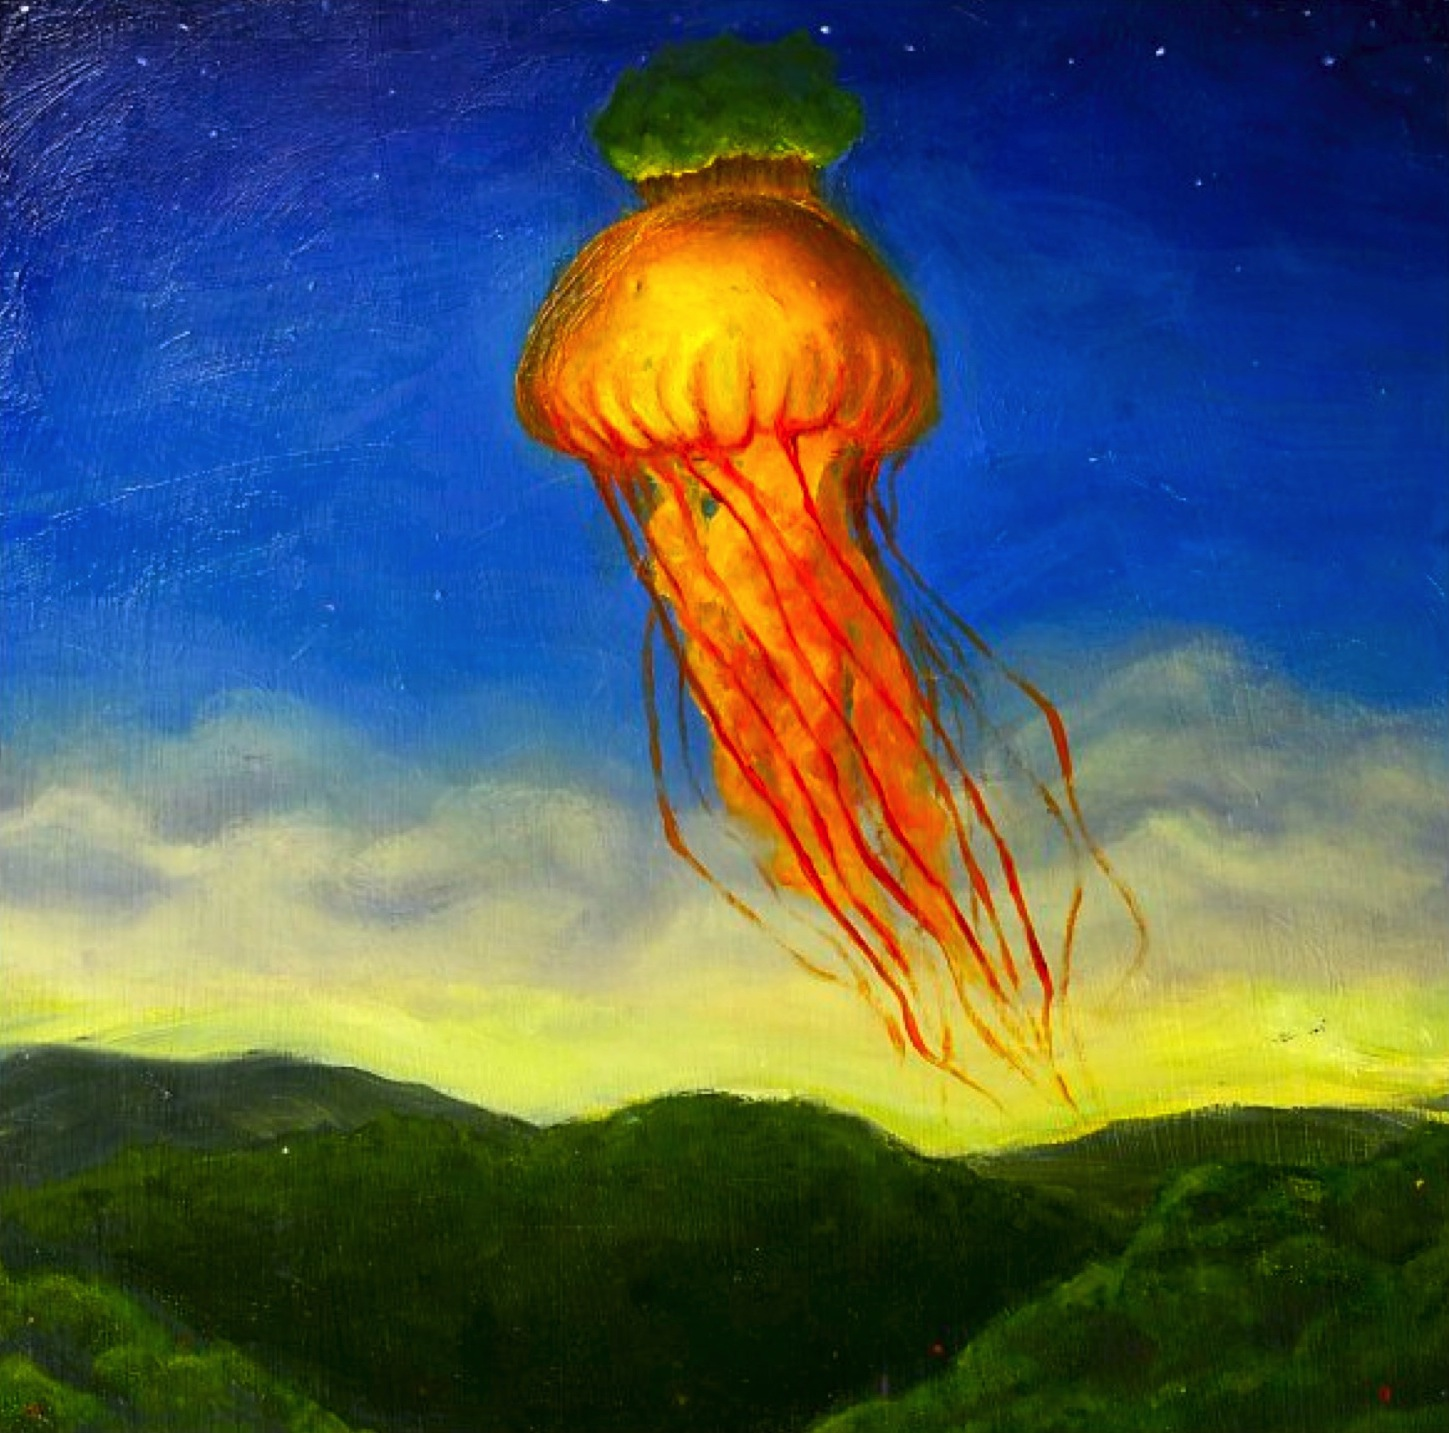 The Appalachian Jelly Fish